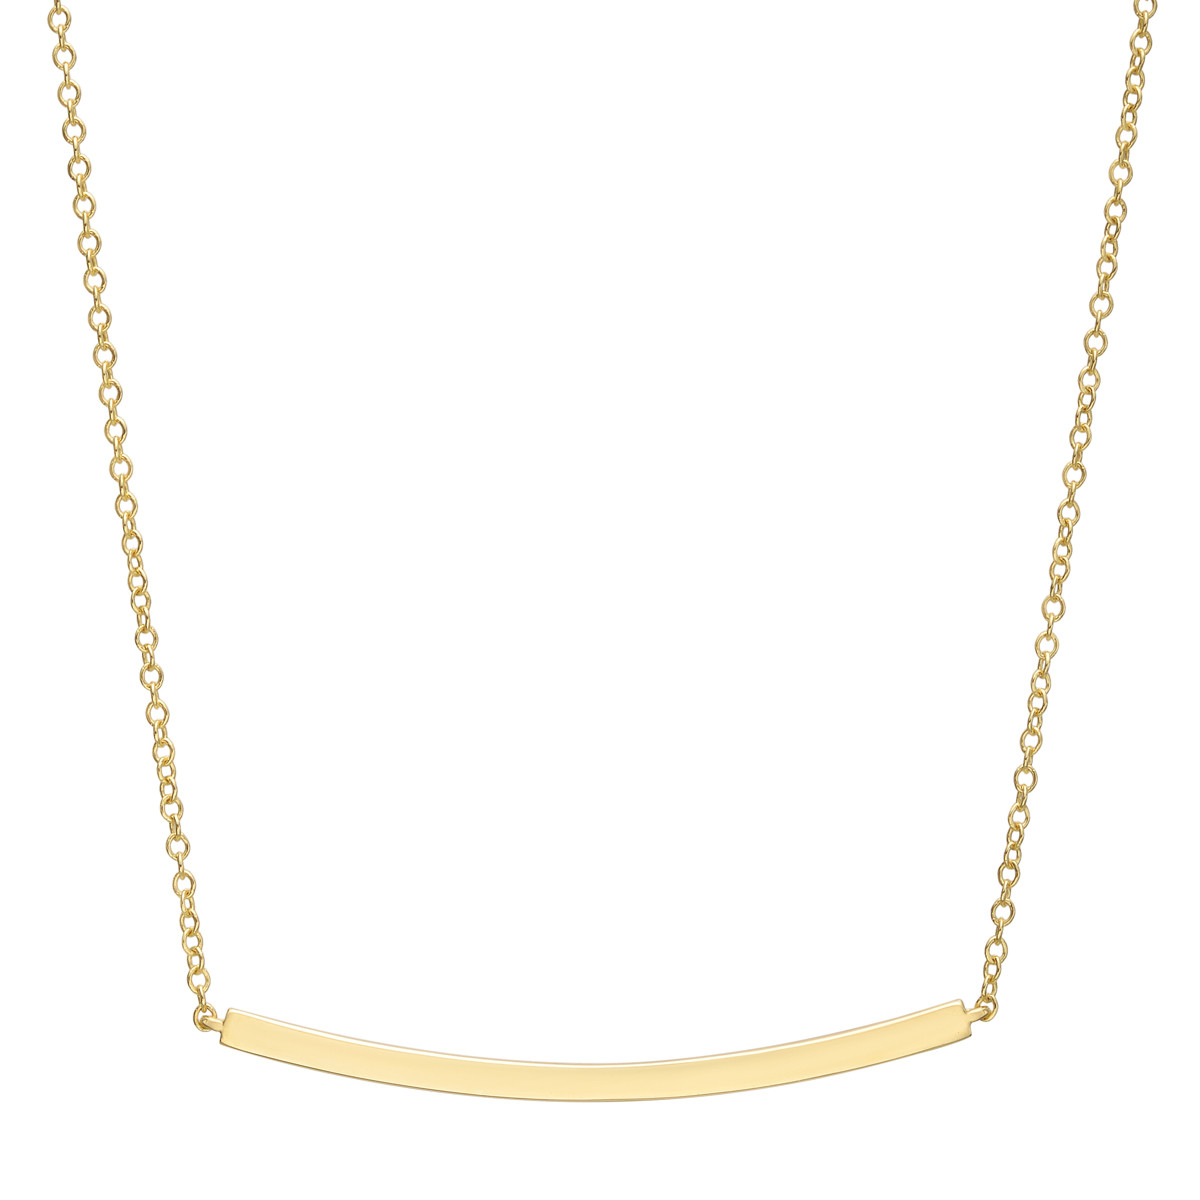 18k Yellow Gold Curving Bar Pendant